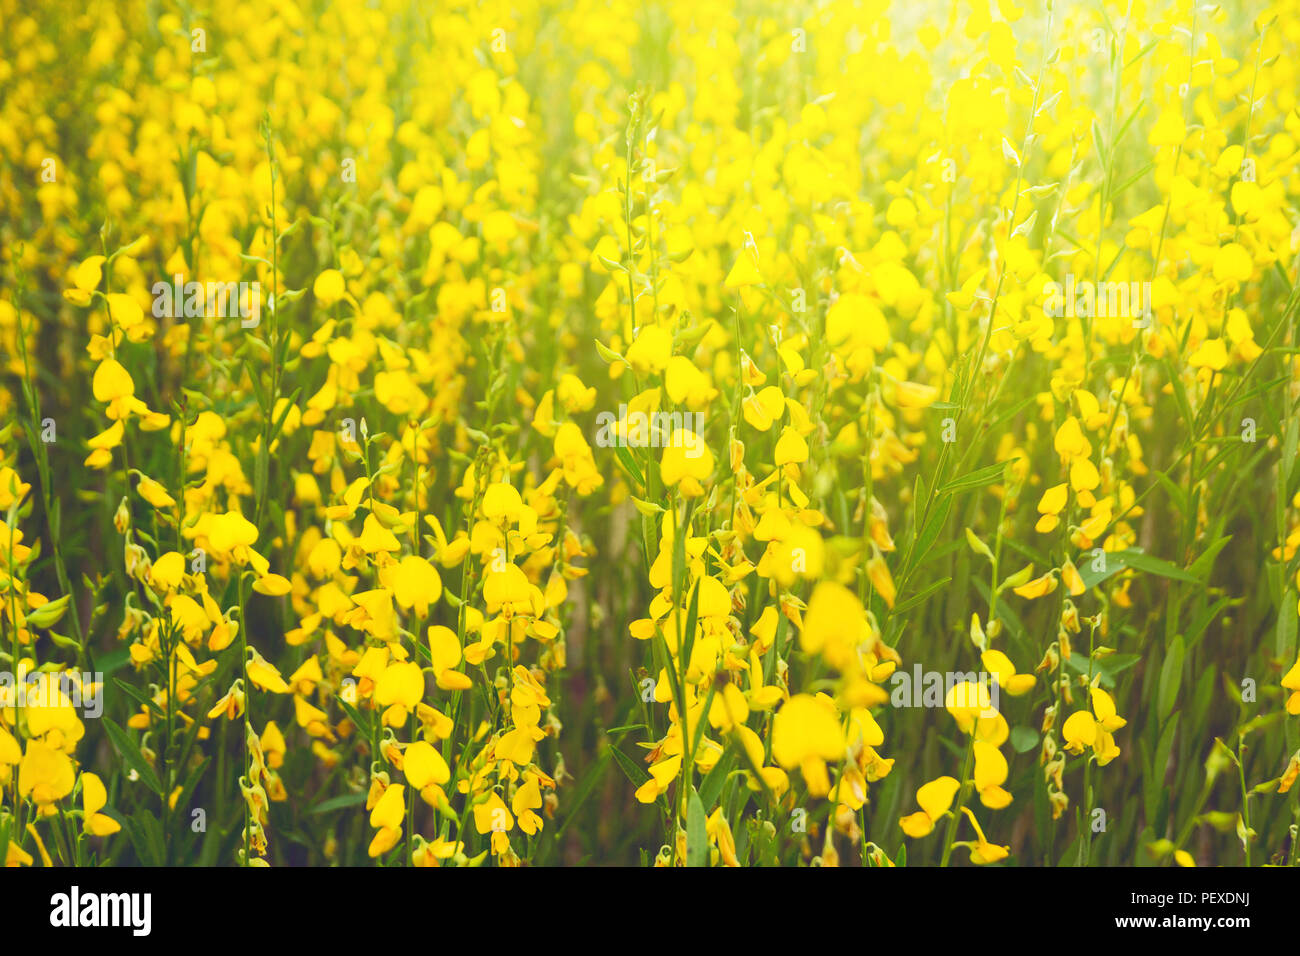 Farm of crotalaria yellow flower agriculture beautiful background farm of crotalaria yellow flower agriculture beautiful background mightylinksfo